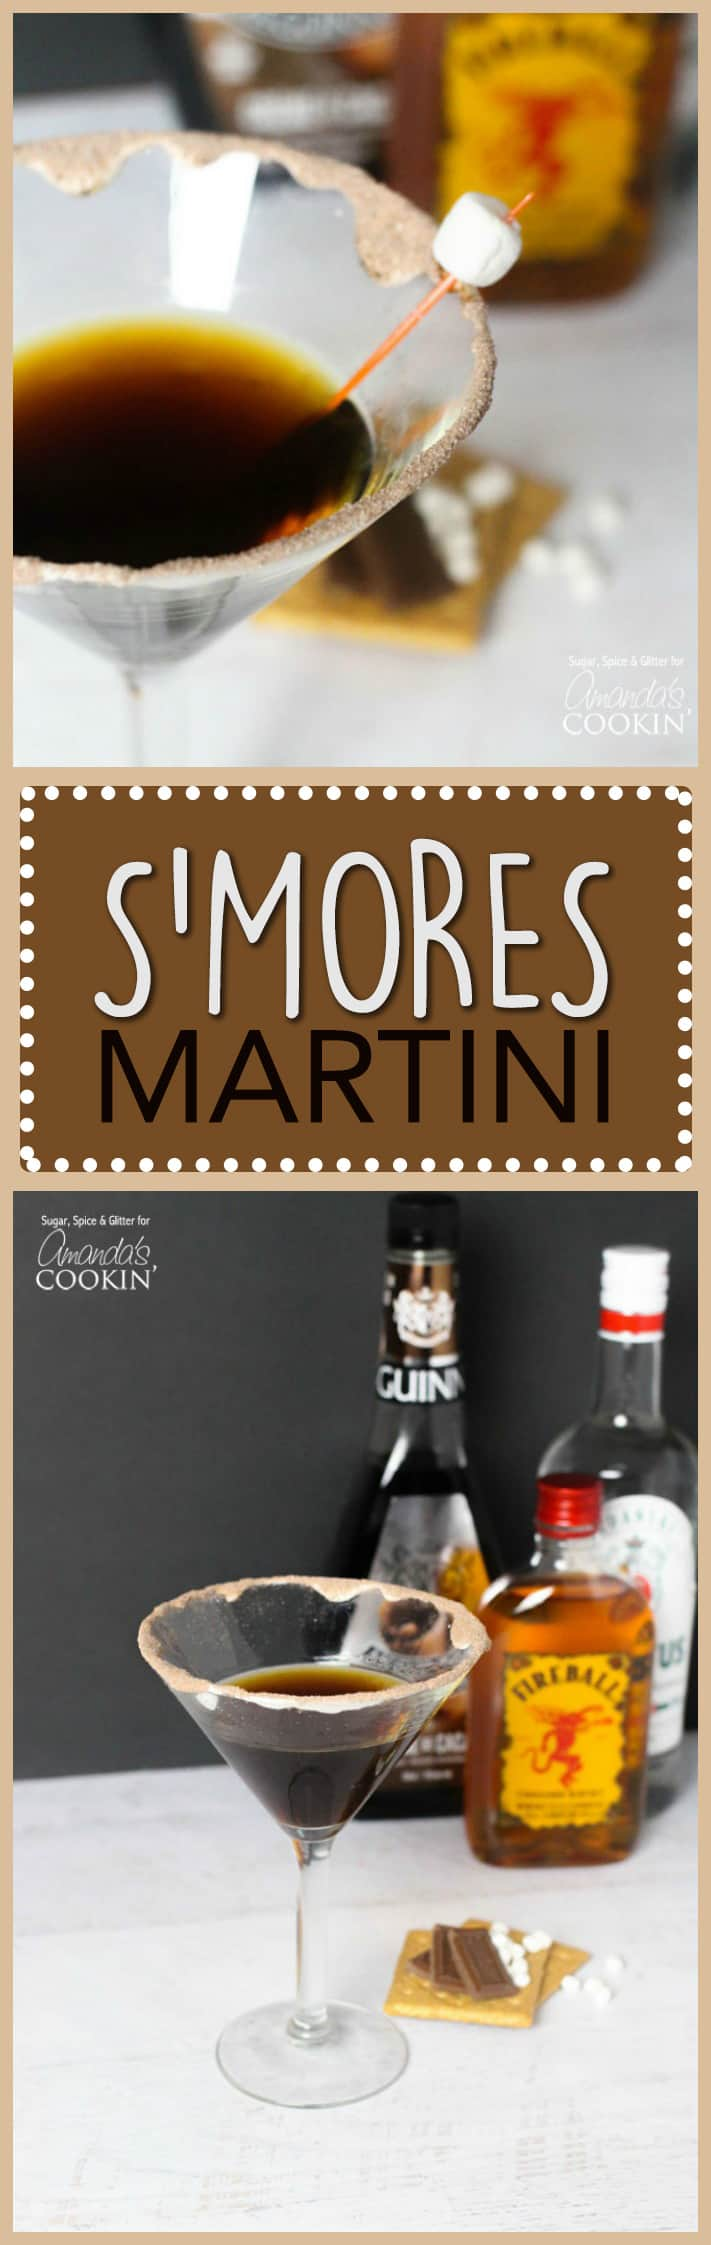 The S'mores Martini is a fun summer cocktail that puts all the flavors of your favorite campfire treat into a glass for grown ups. A great summer treat!